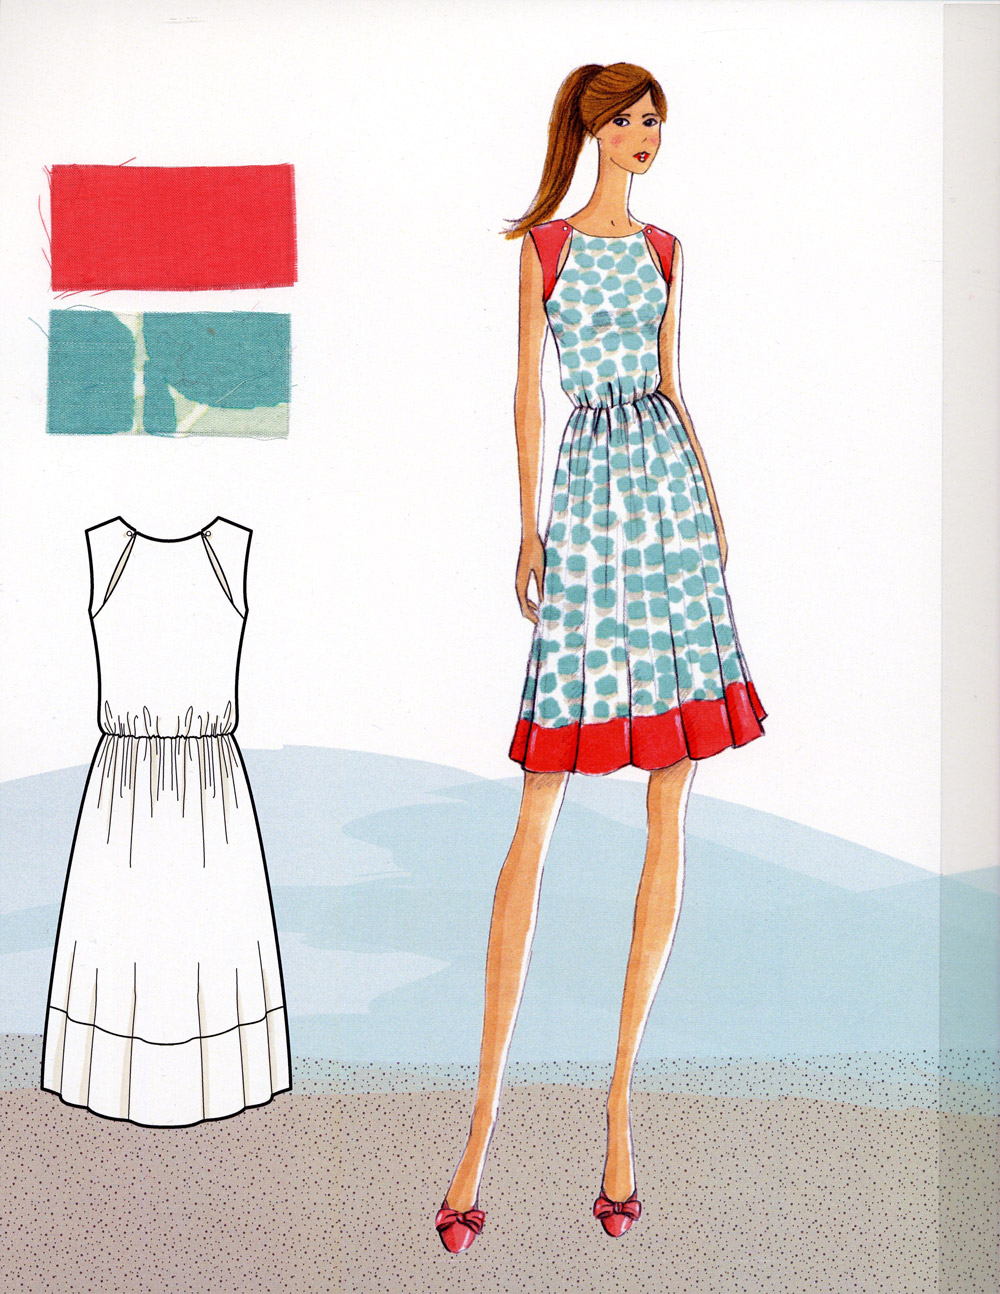 Dress with cutouts in bodice